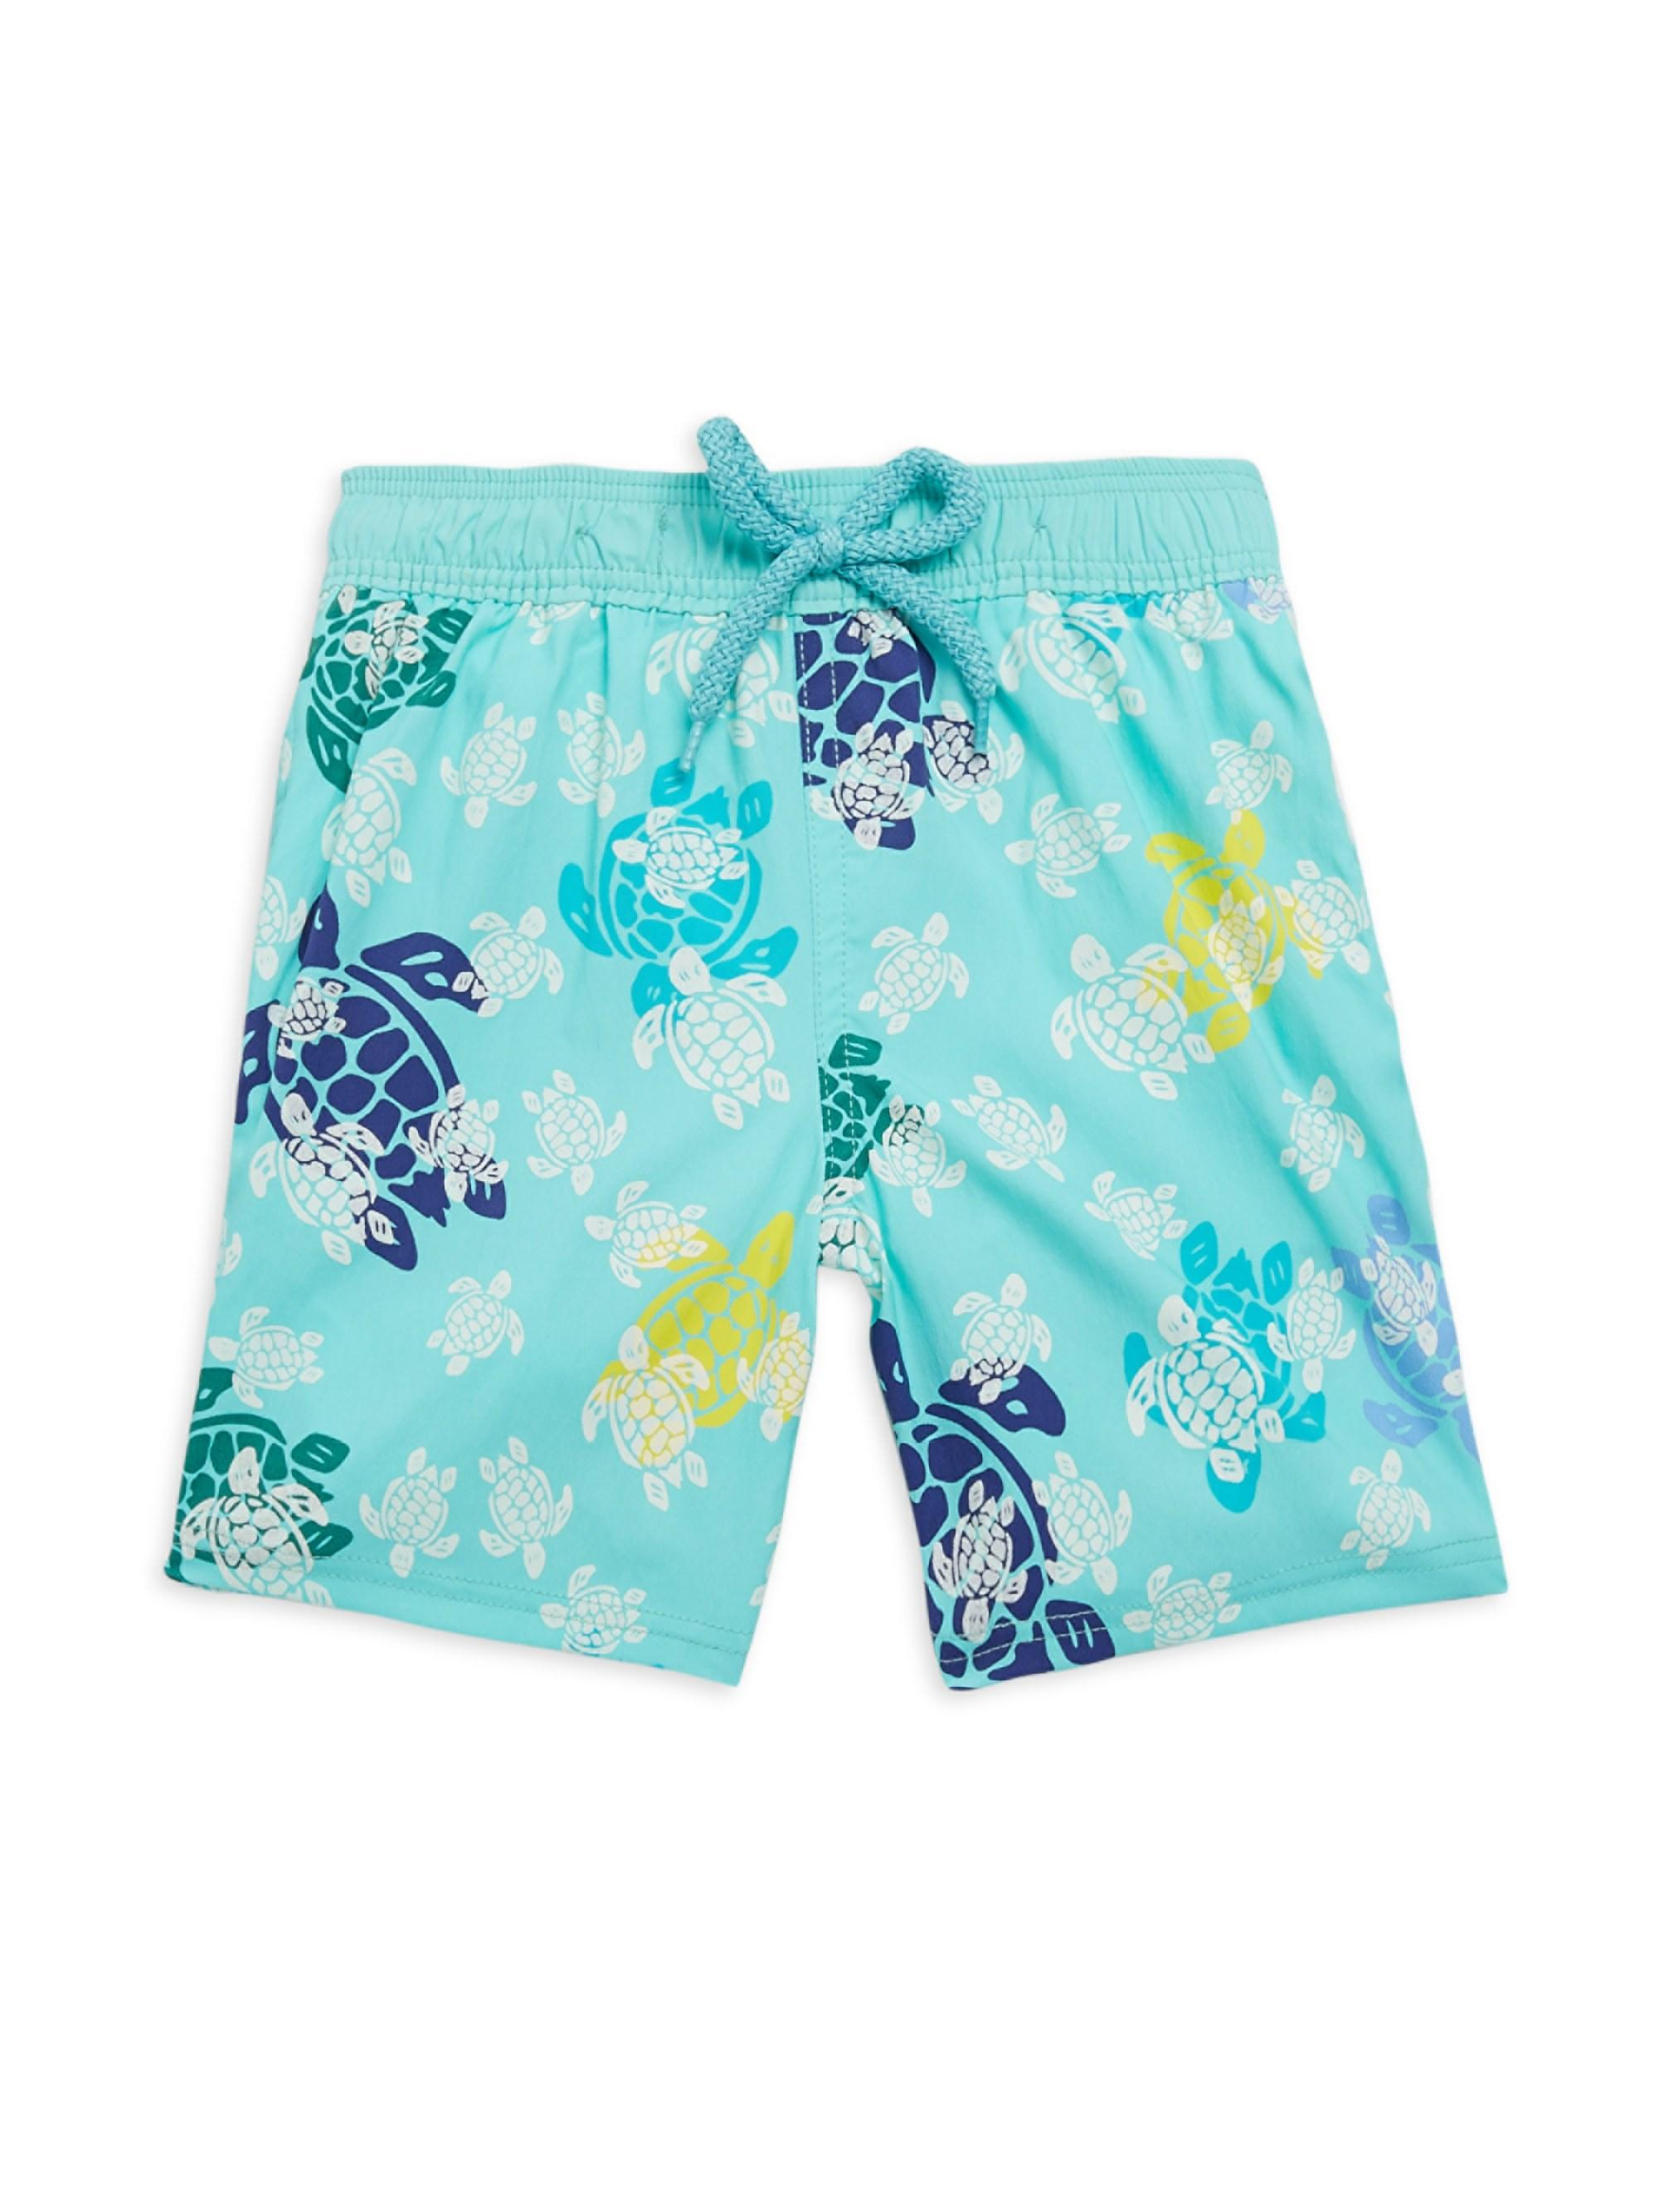 3c56f70572 Vilebrequin. Men's Blue Little Boy's & Boy's Turtle Dance Swim Shorts